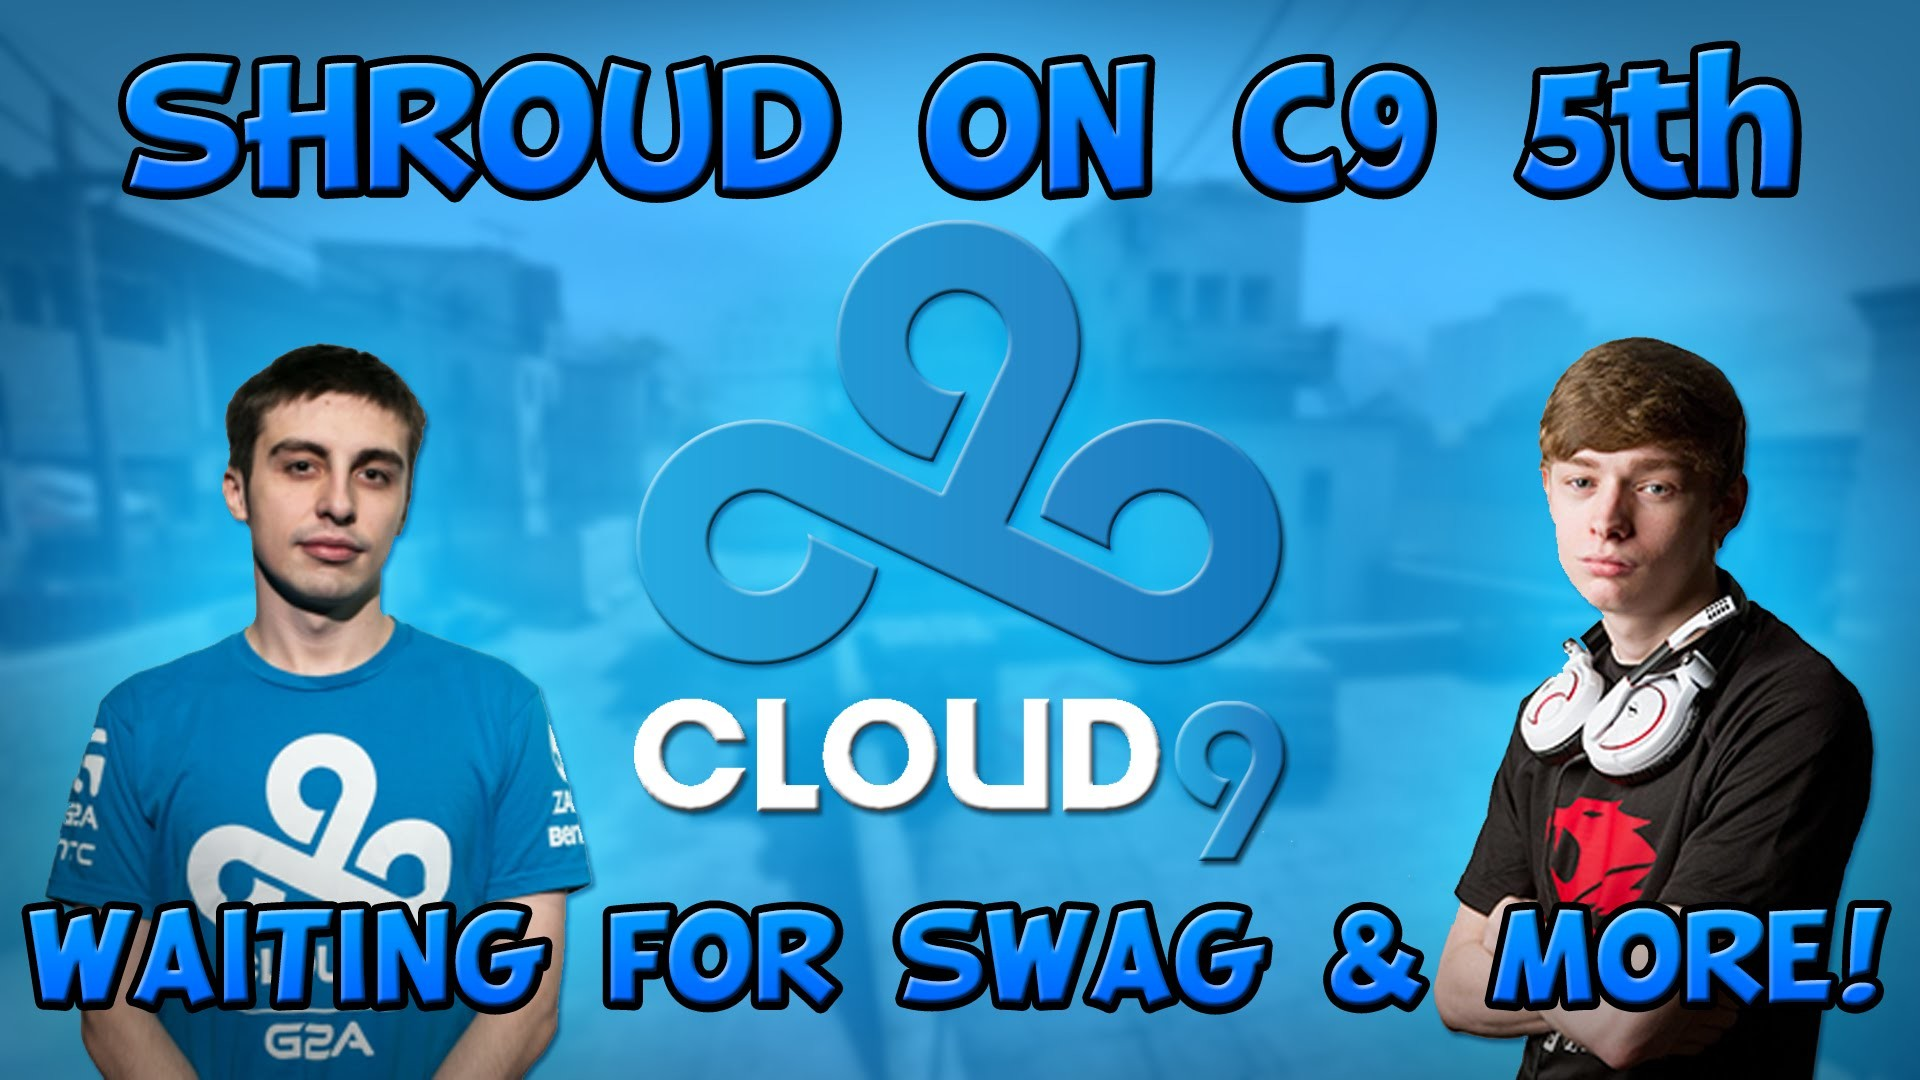 """CS:GO – Shroud On Cloud 9 5th, Waiting For 'swag' Unban & More! – """"We would  love to have Brax"""" – YouTube"""